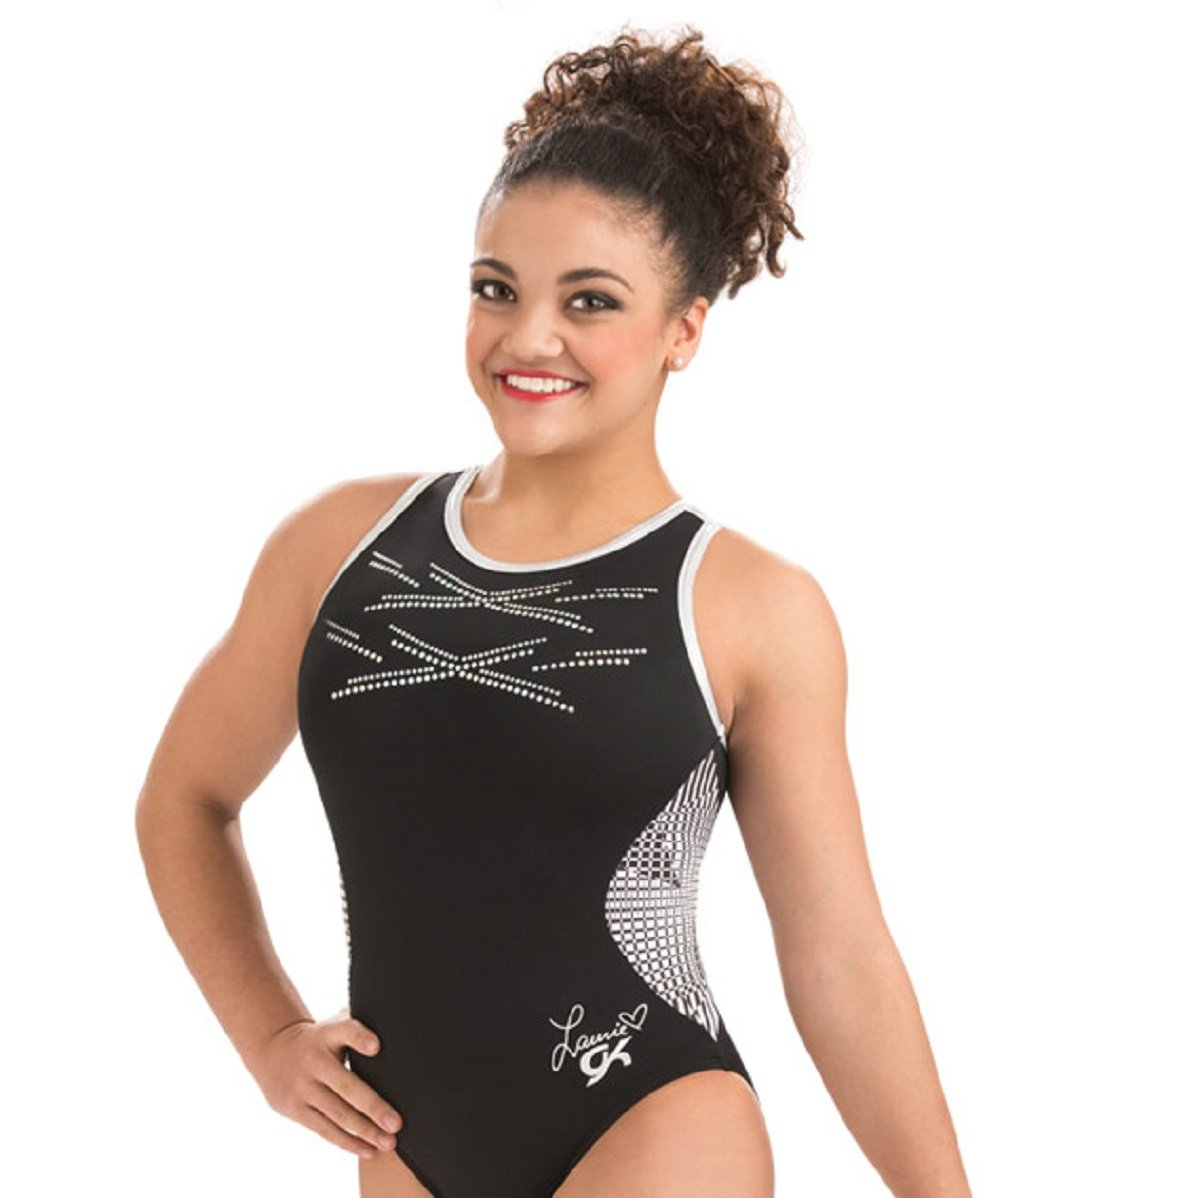 GK Elite Laurie Hernandez Digiglam Leotard Child Medium CM by GK Elite